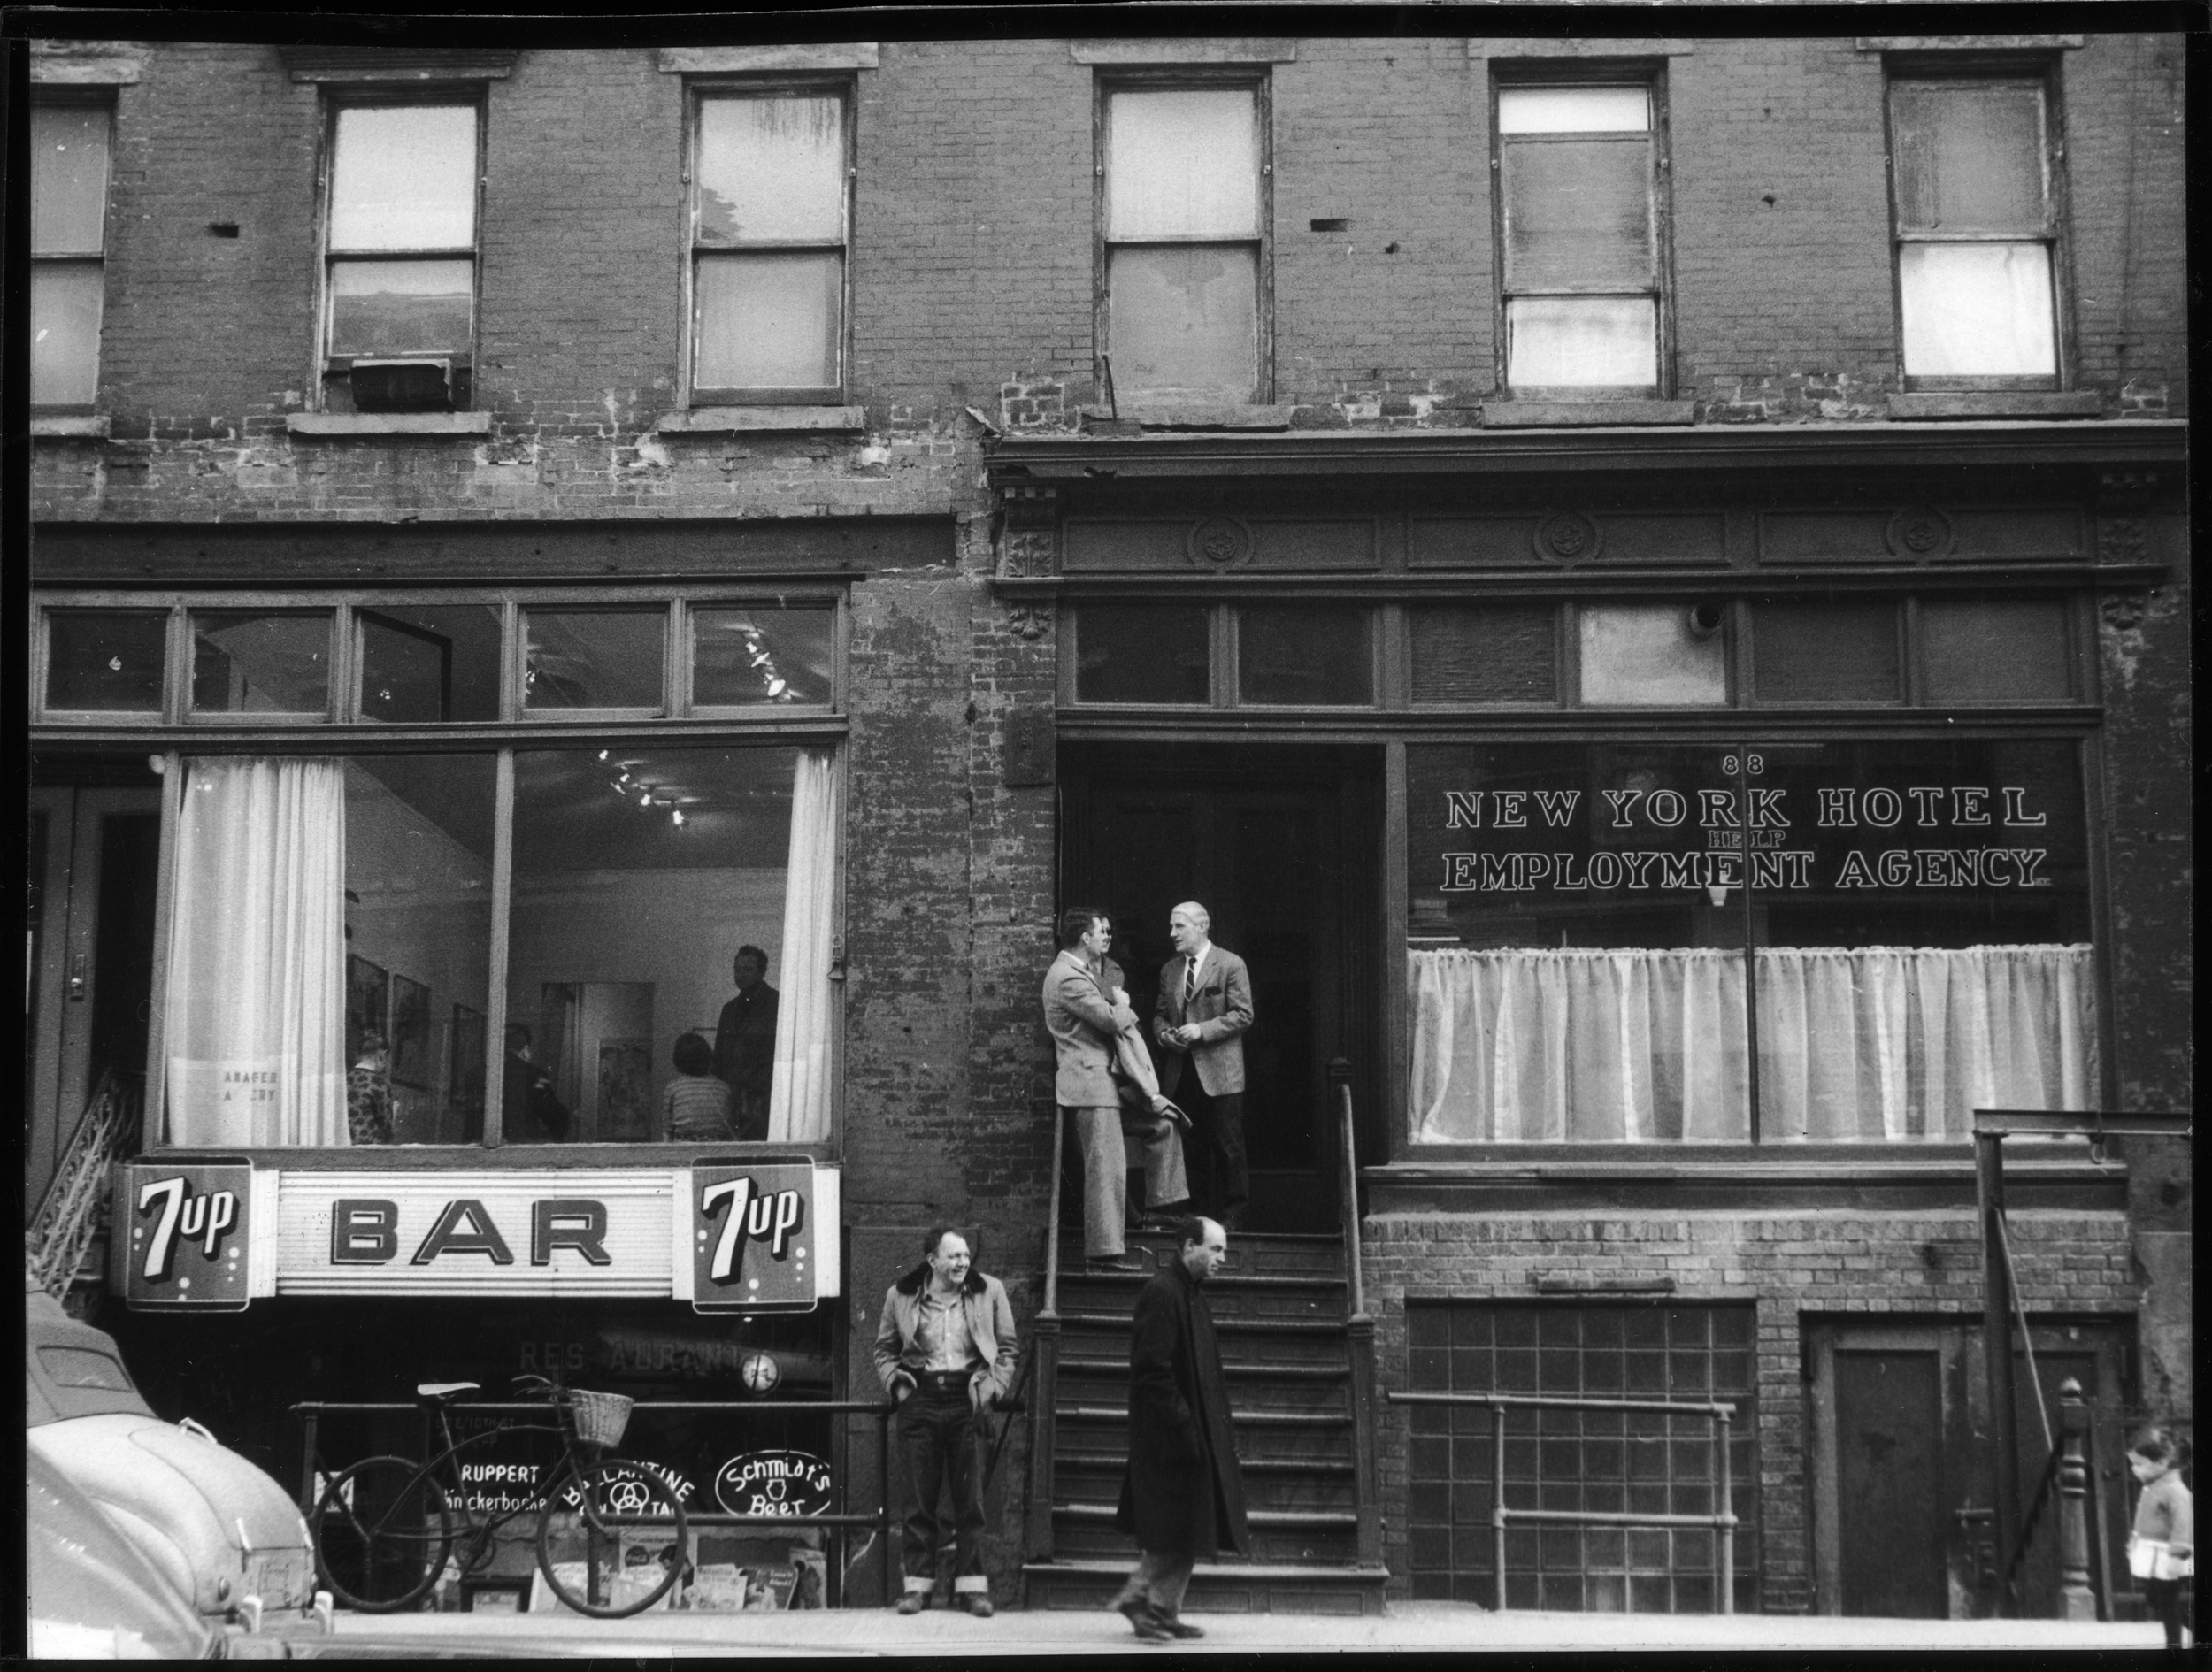 Above: Willem deKooning (1904-1997) (center, with light hair) speaks with author Noel Clad (1923-1962) and his wife at the top of a stoop at 88 East 10th Street, next door to the Tanager Gallery (the storefront above the 'Bar' sign), April 5, 1959. Photo by Fred W. McDarrah. Below: Same stoop, 56 years later. Photo by Save the Village.